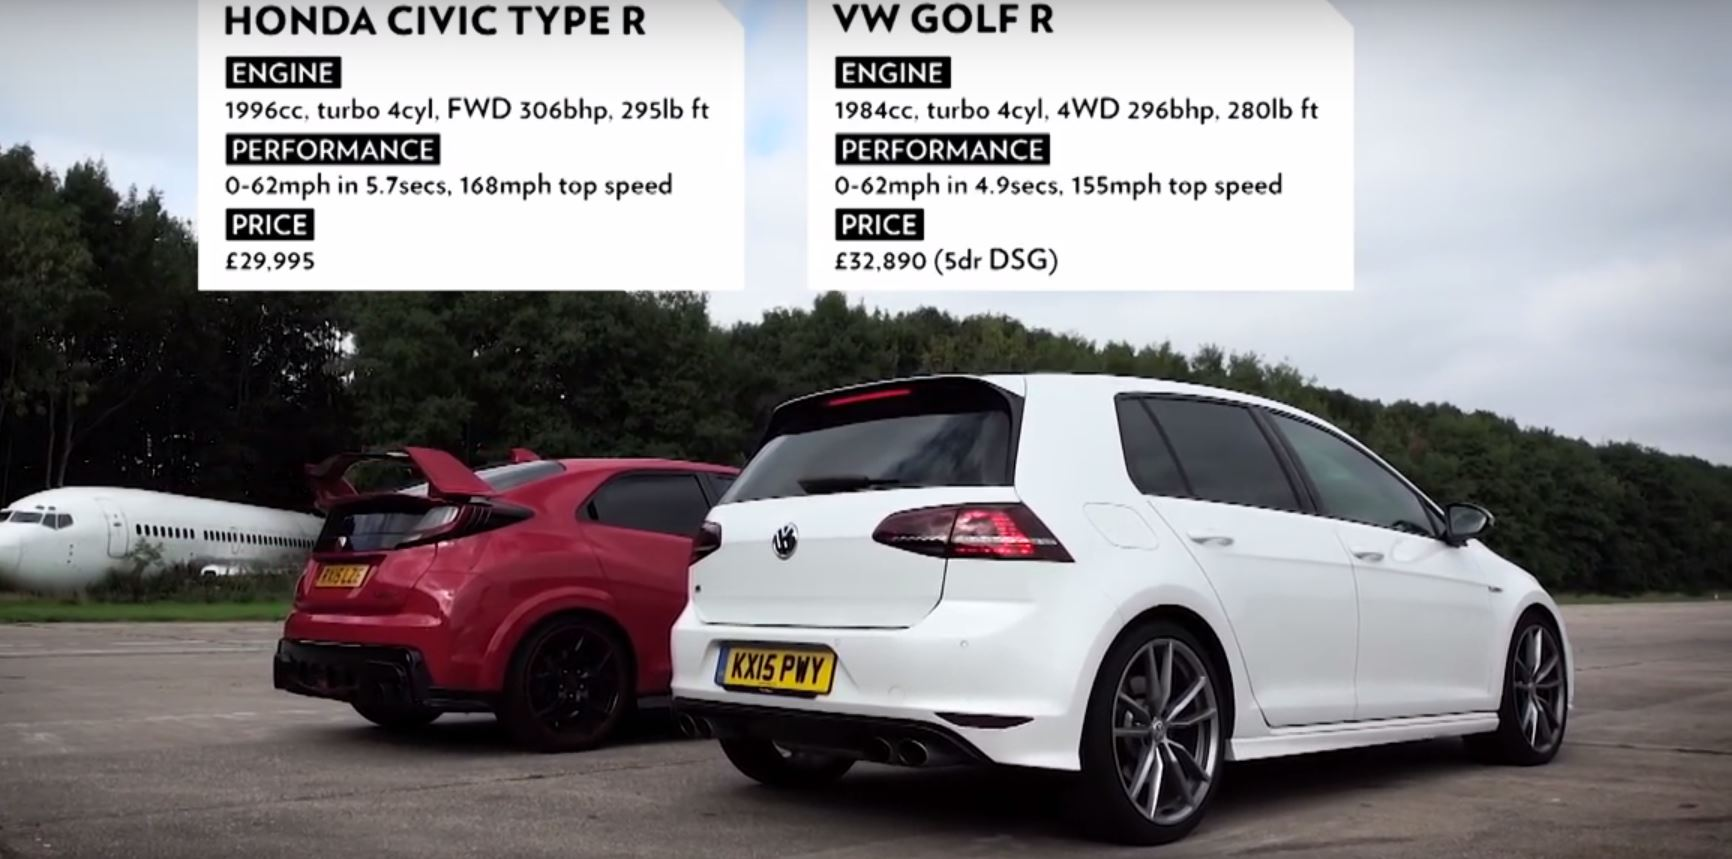 Honda Civic Type R Takes On VW Golf R in Hot Hatch Drag Race